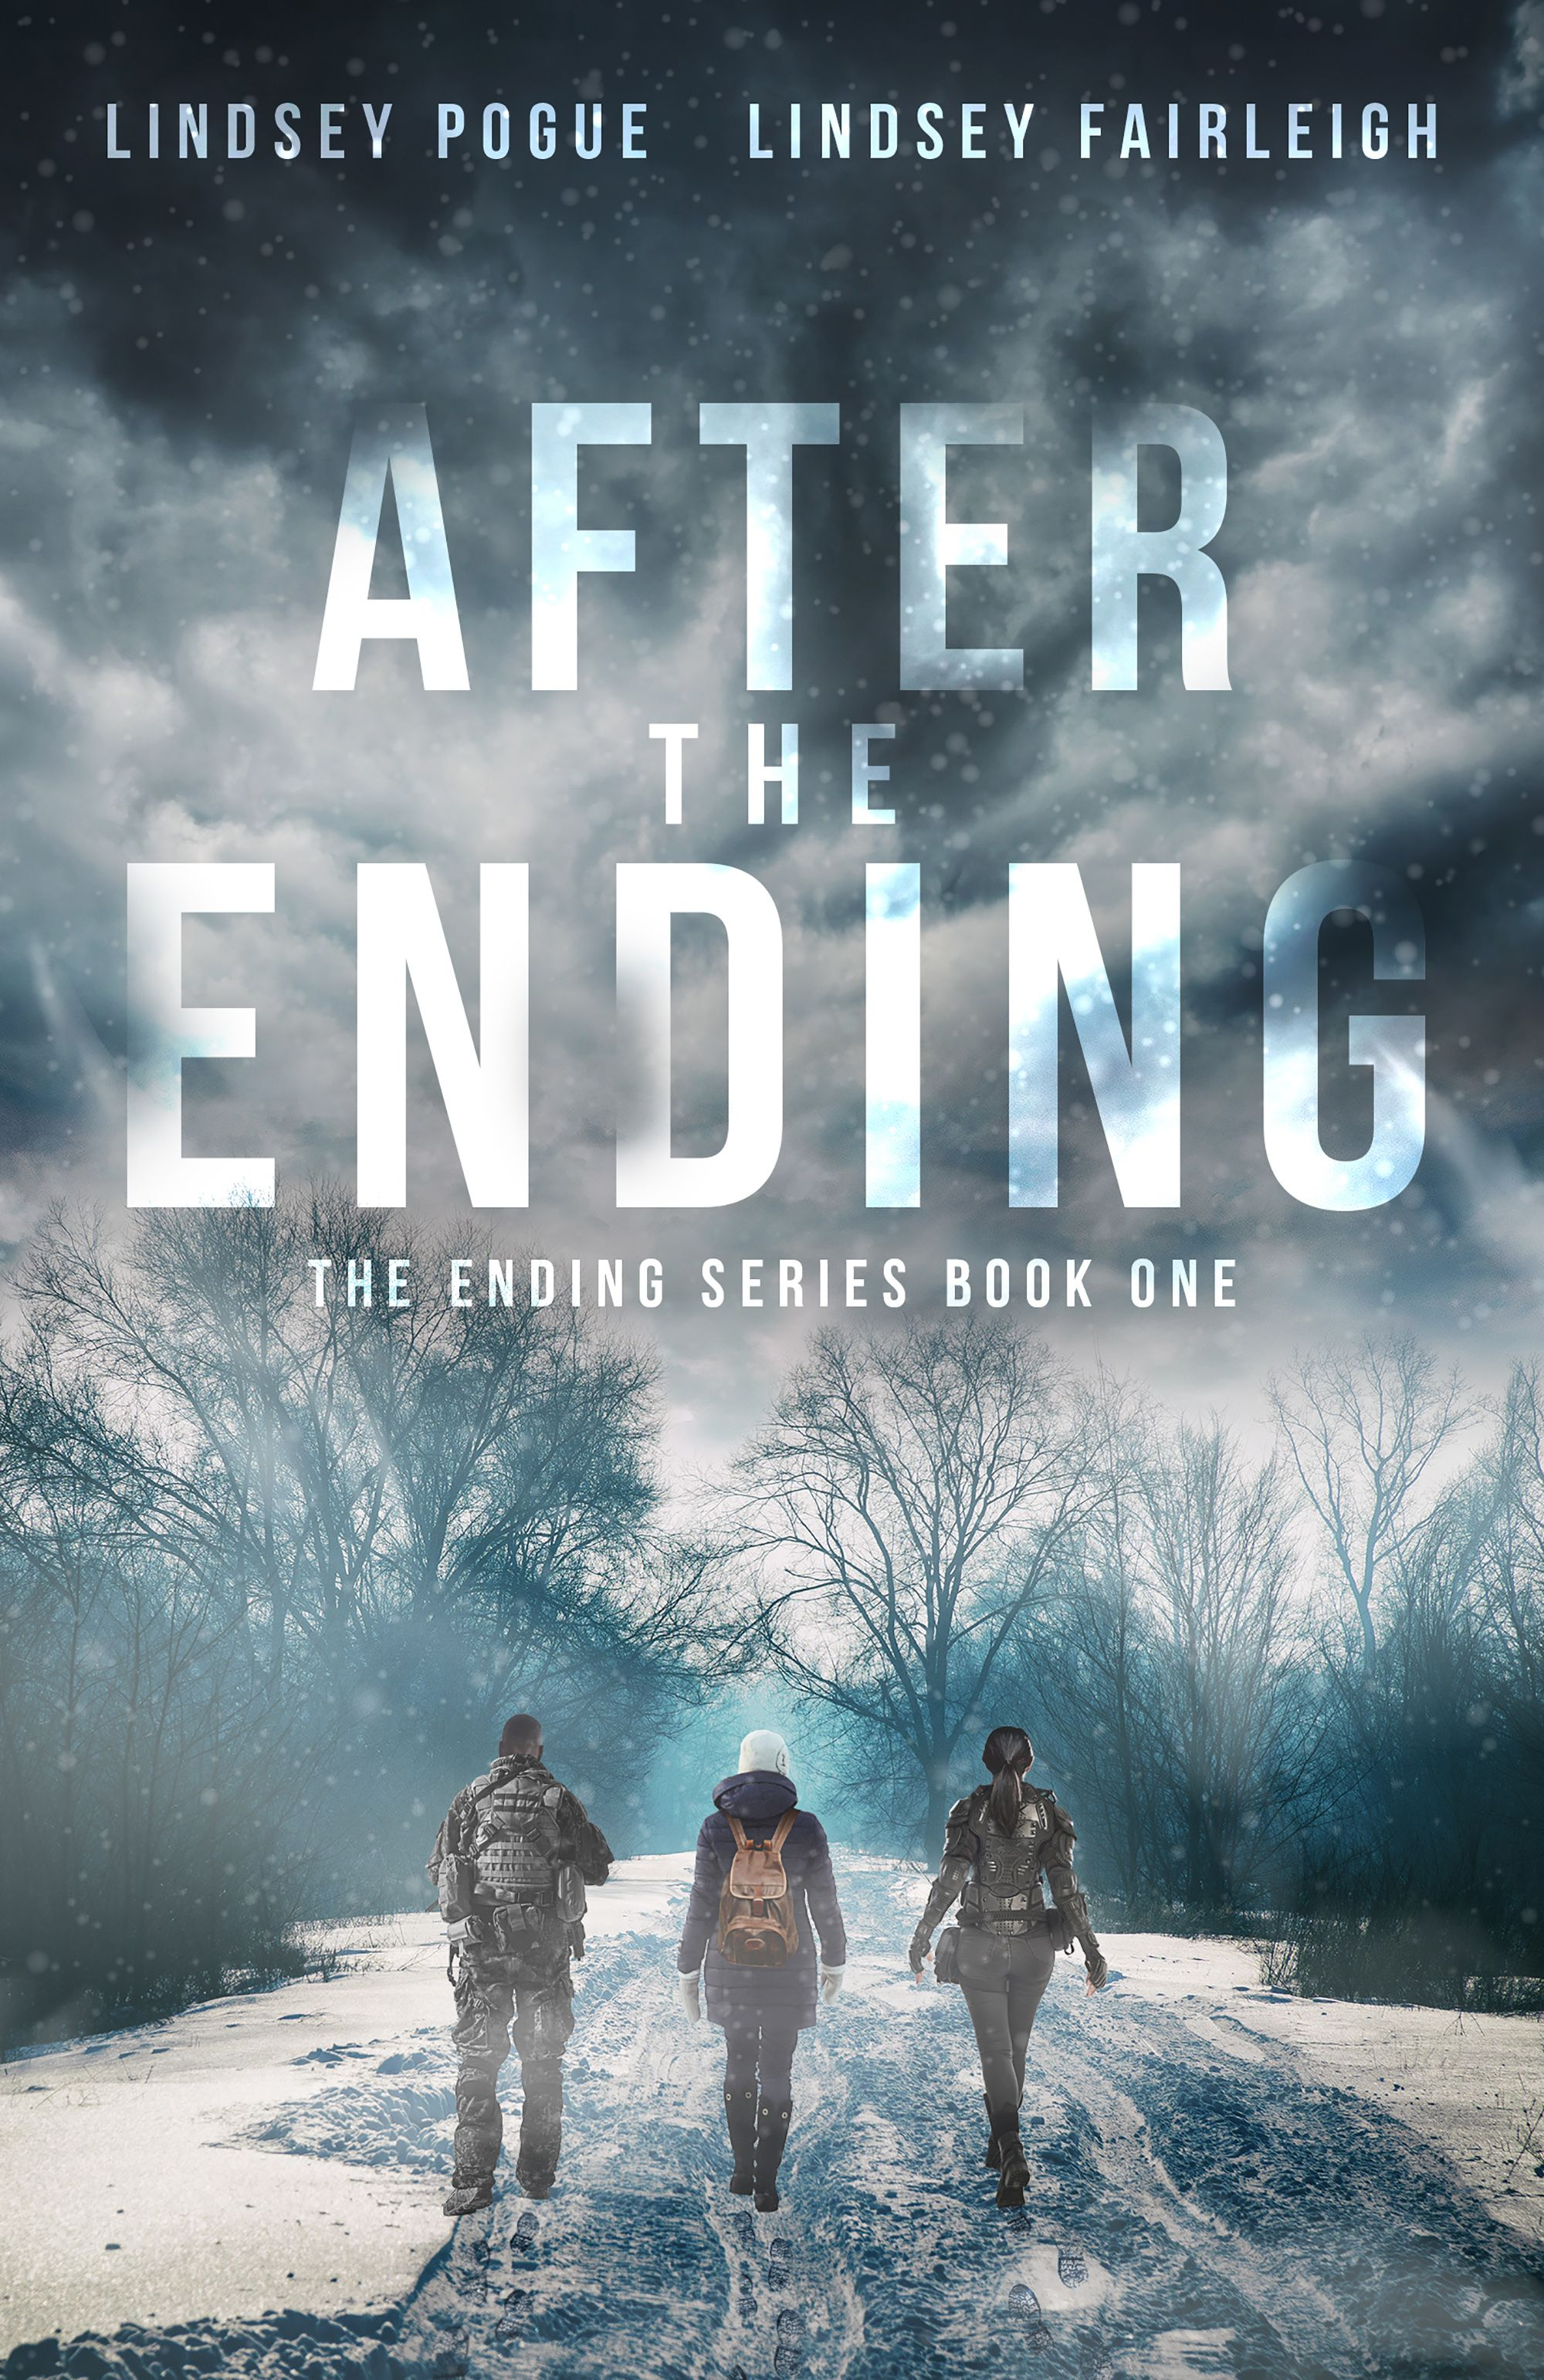 After the ending the ending series 1 zombies books